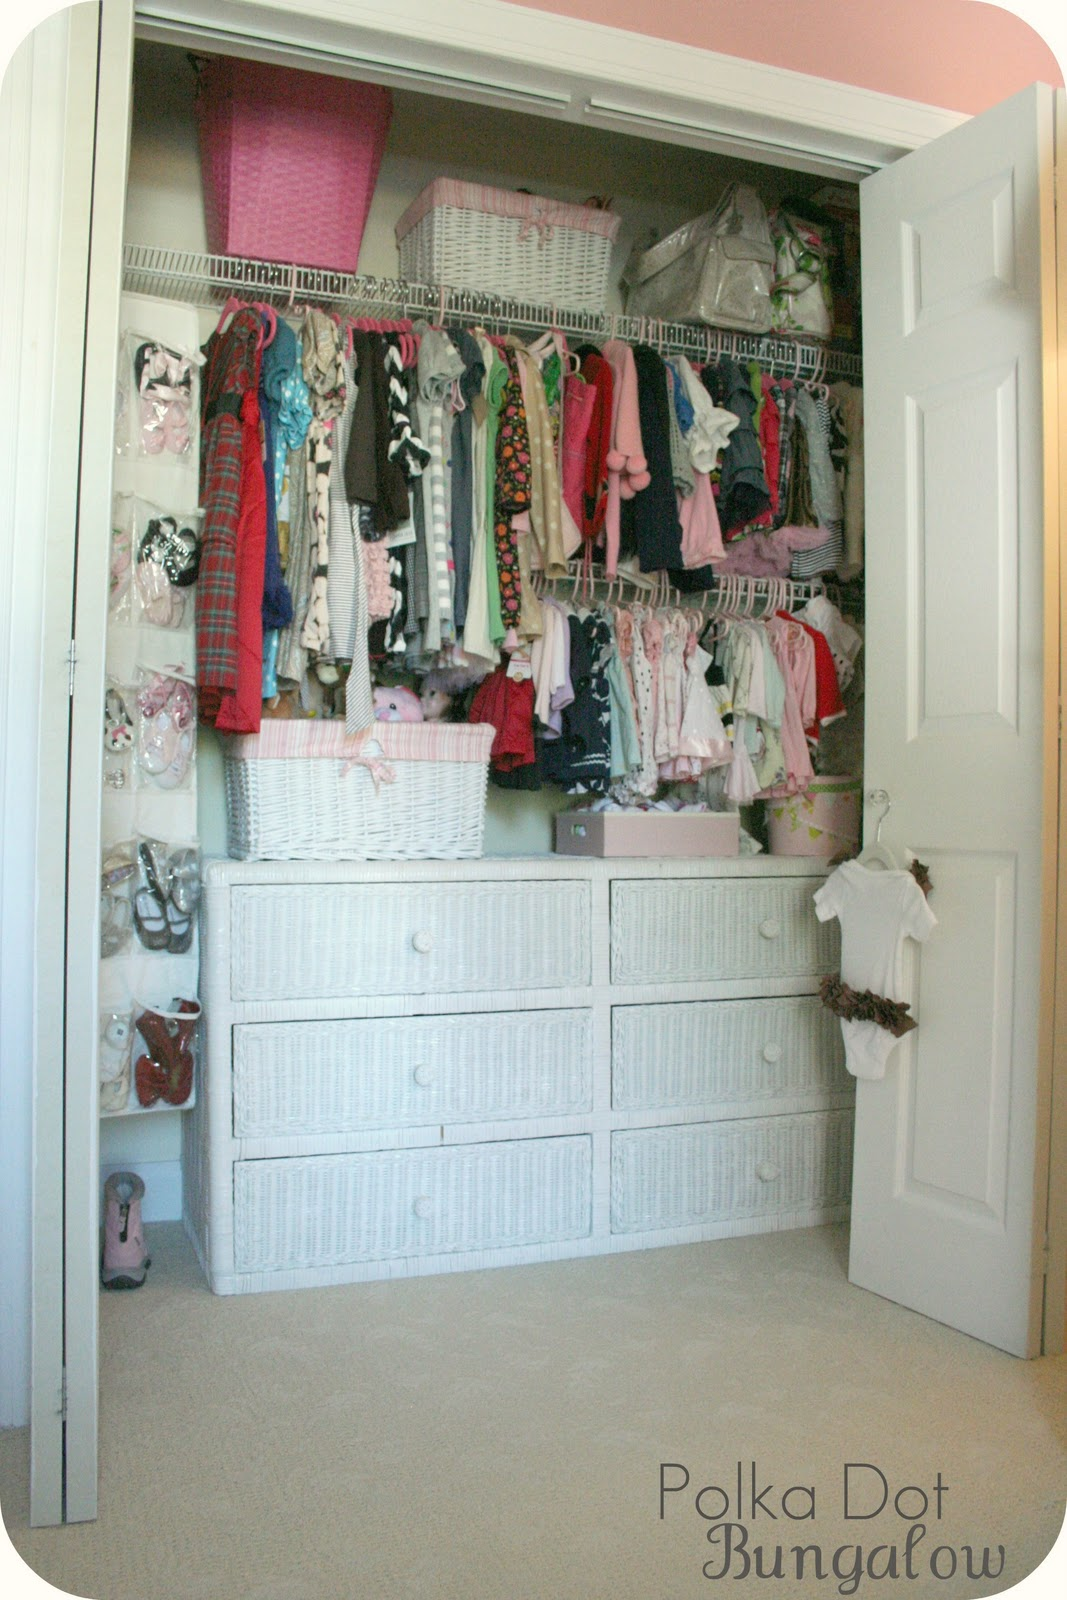 ... On The Changing Station And For Miss B To Help Me Get Items :) All Of  Her Hanging Items Are On The Lower Right Shelf In The Closet, Organized By  Size.